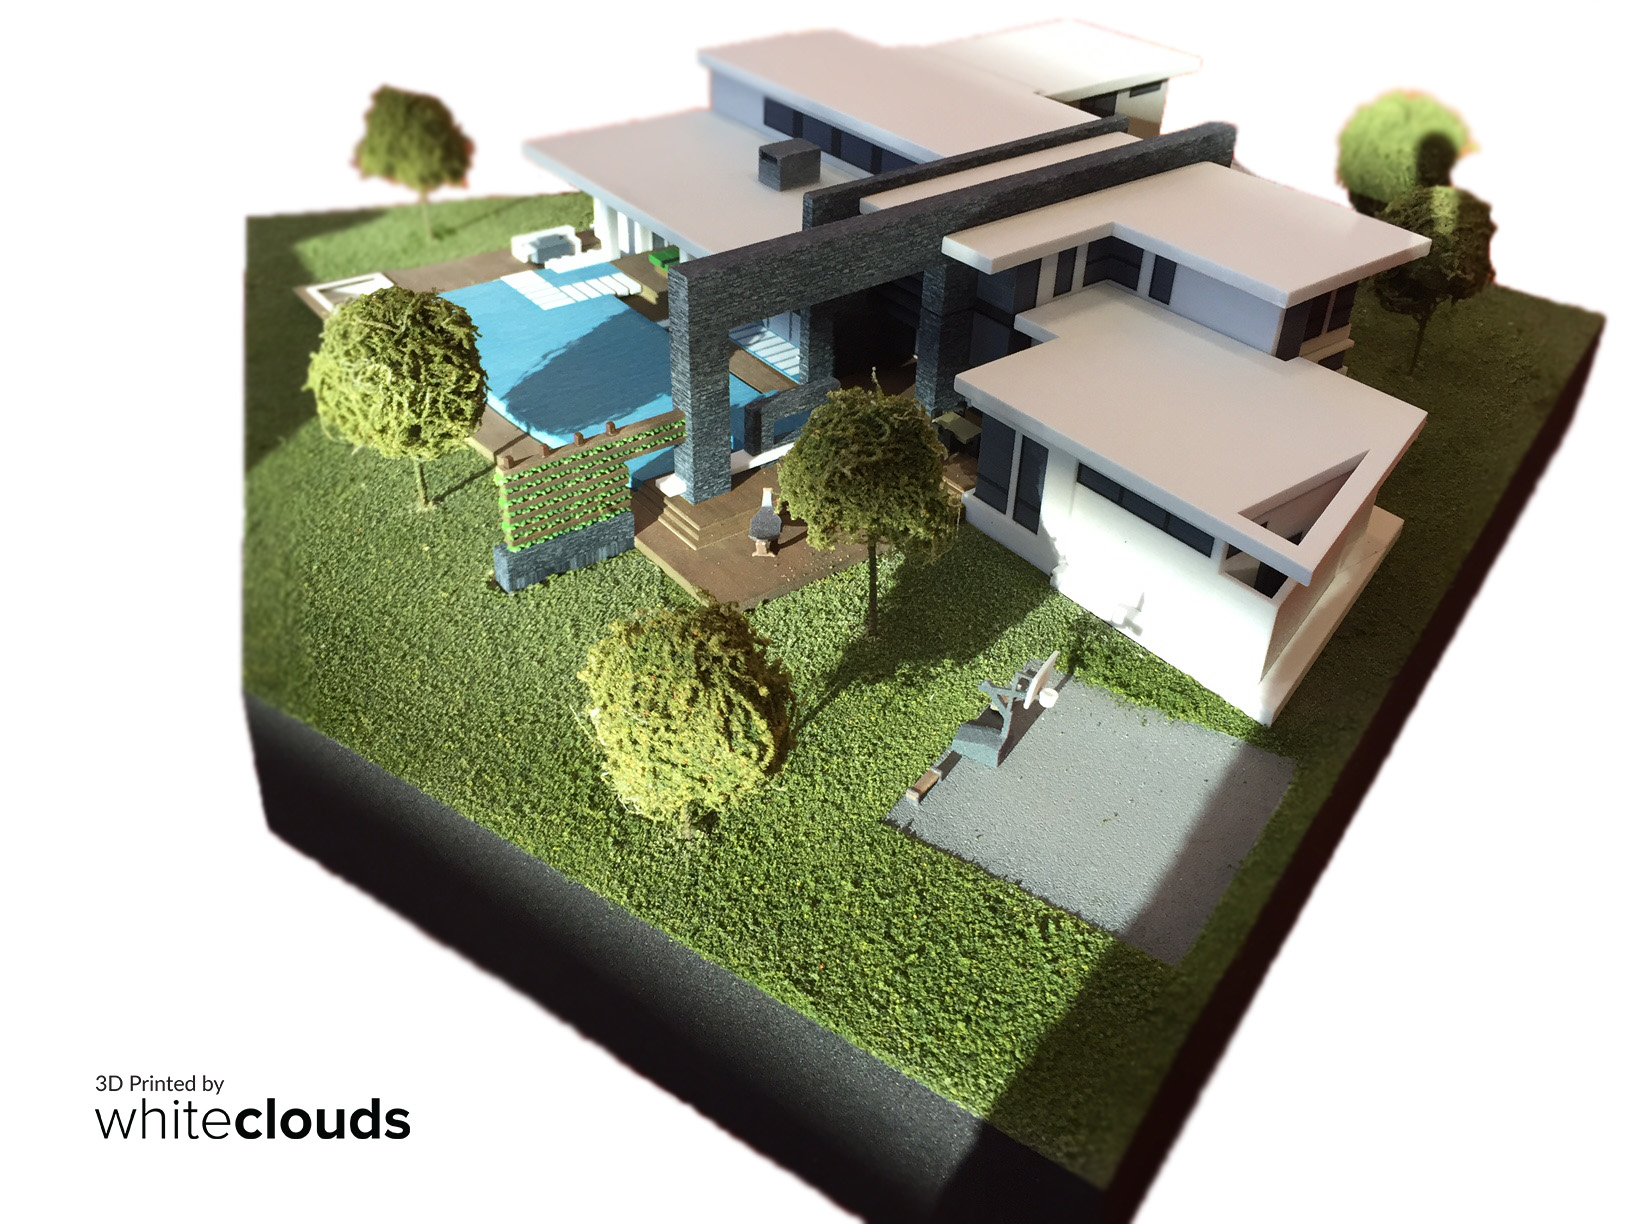 3D-Printed-WhiteClouds-House-Architectural-Jafa-House-3.JPG